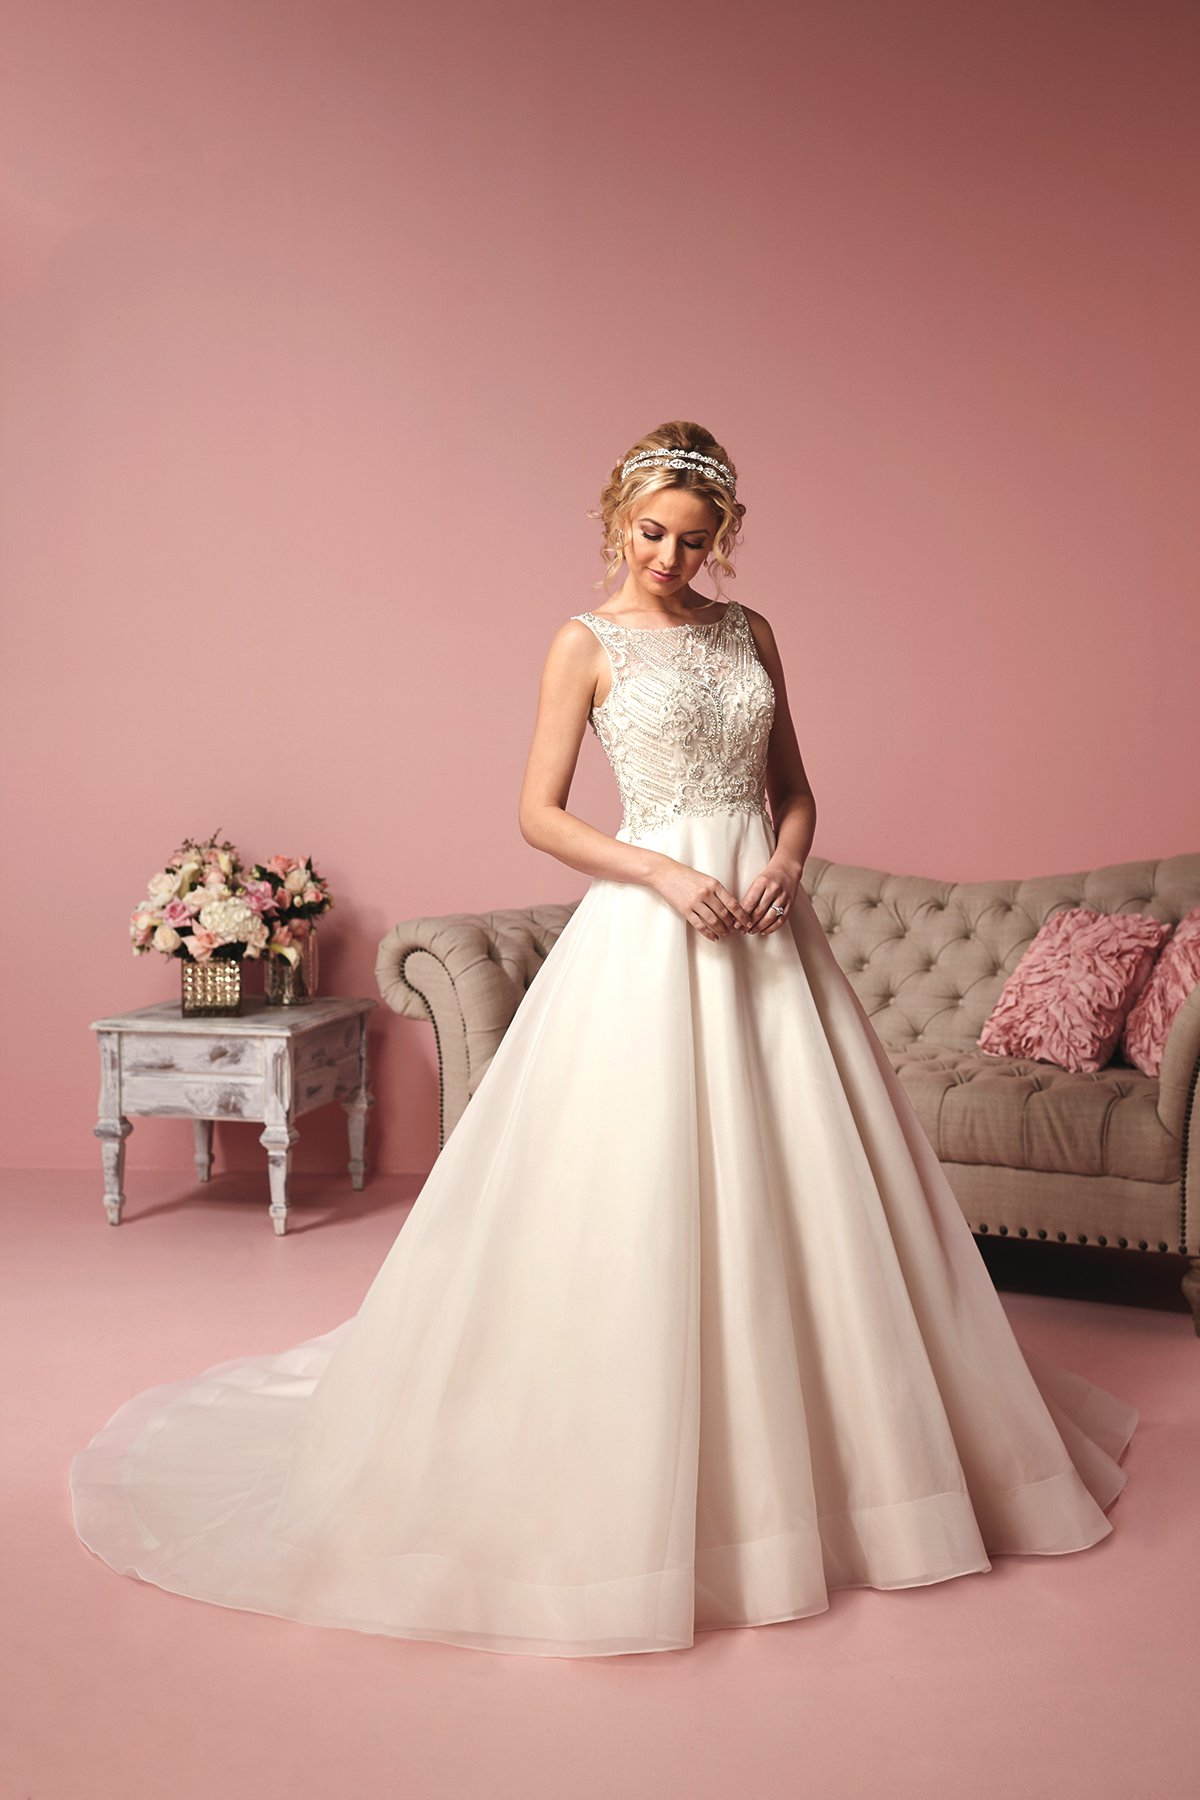 WIN an Eternity Bridal gown! - Love Our Wedding